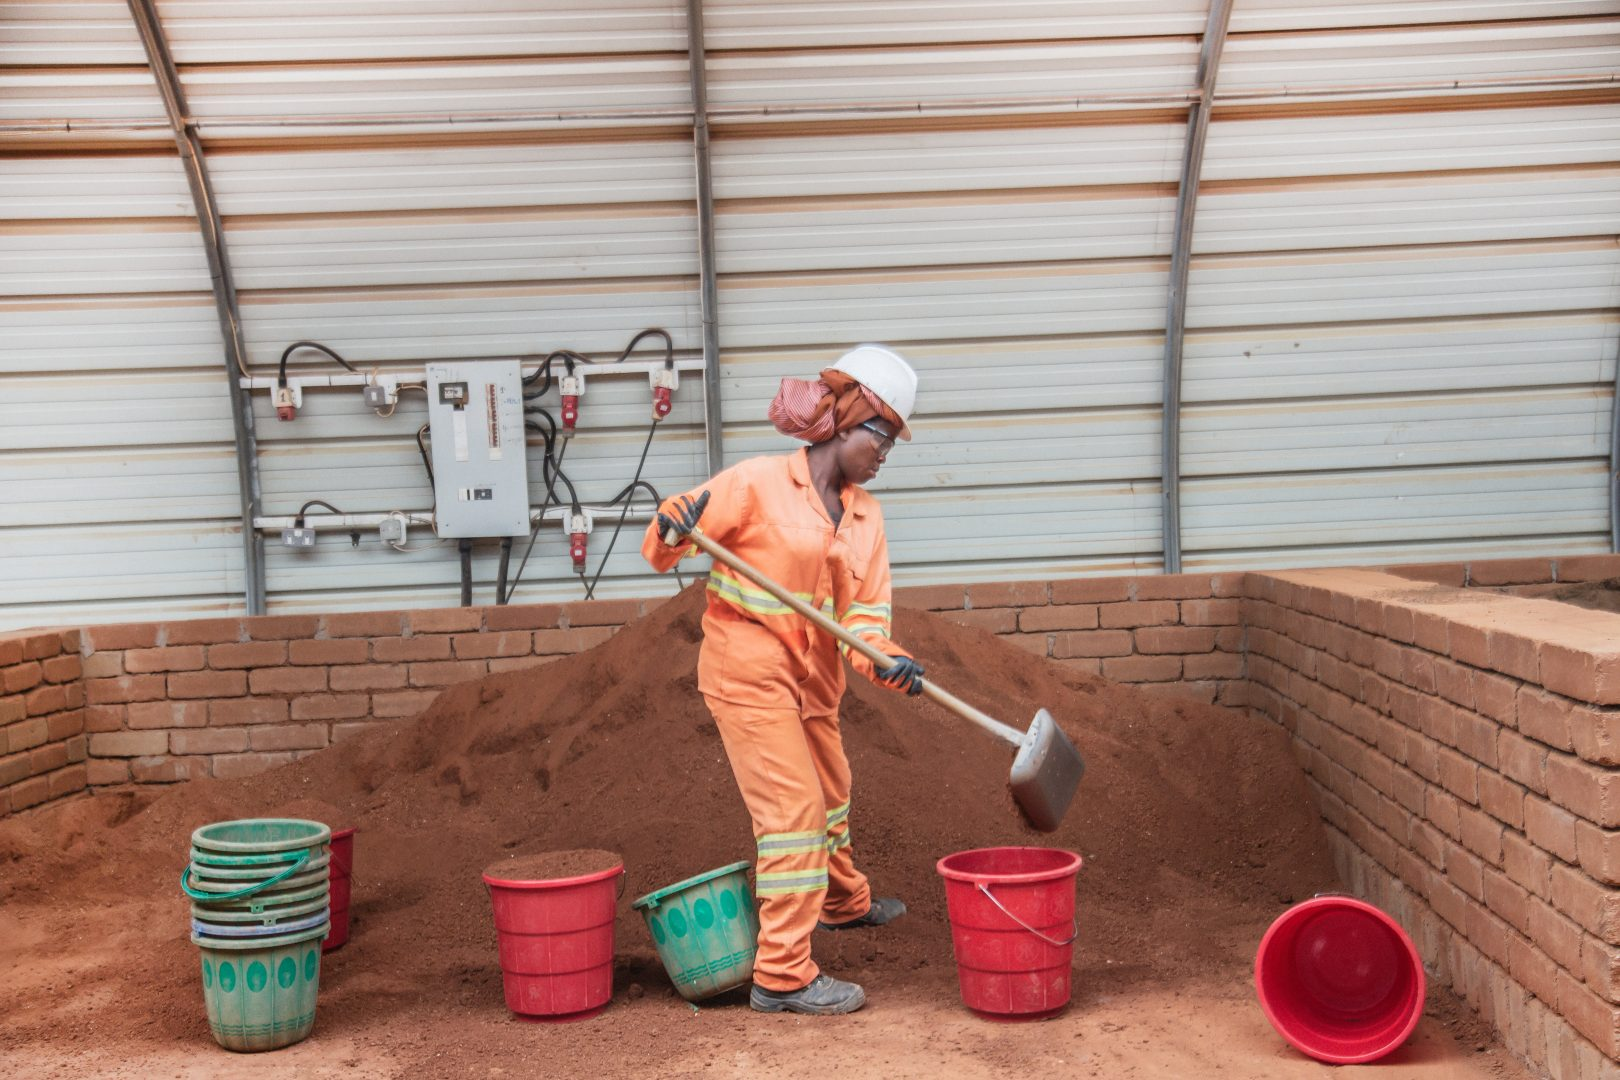 Female worker shovels earth into buckets for brick production